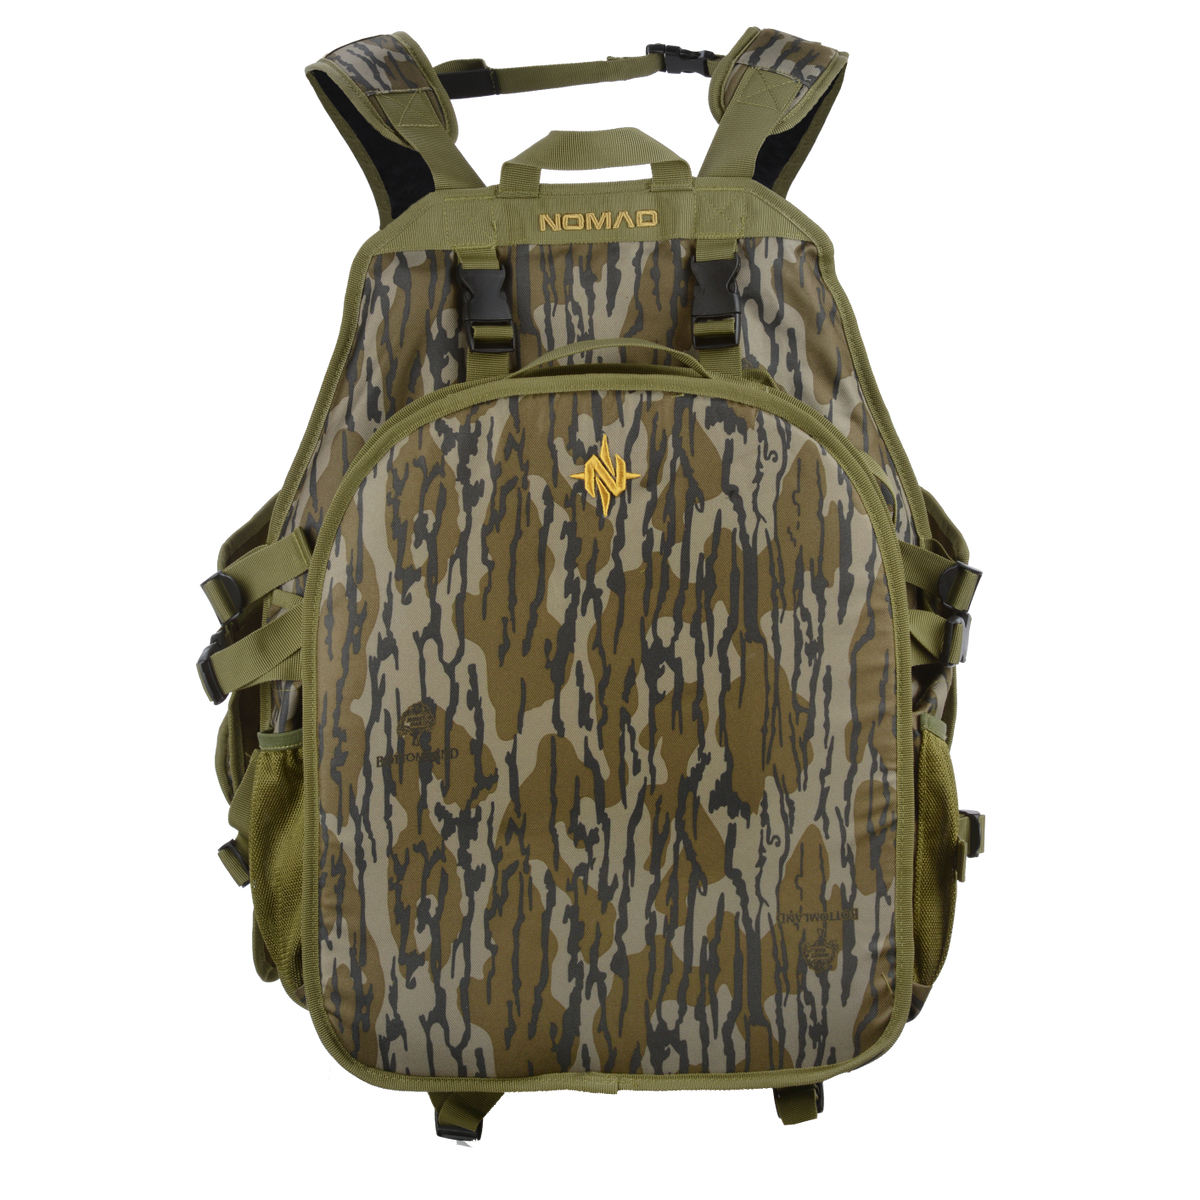 9769731a92b2f Performance Hunting Clothes | Outdoor Apparel | NOMAD